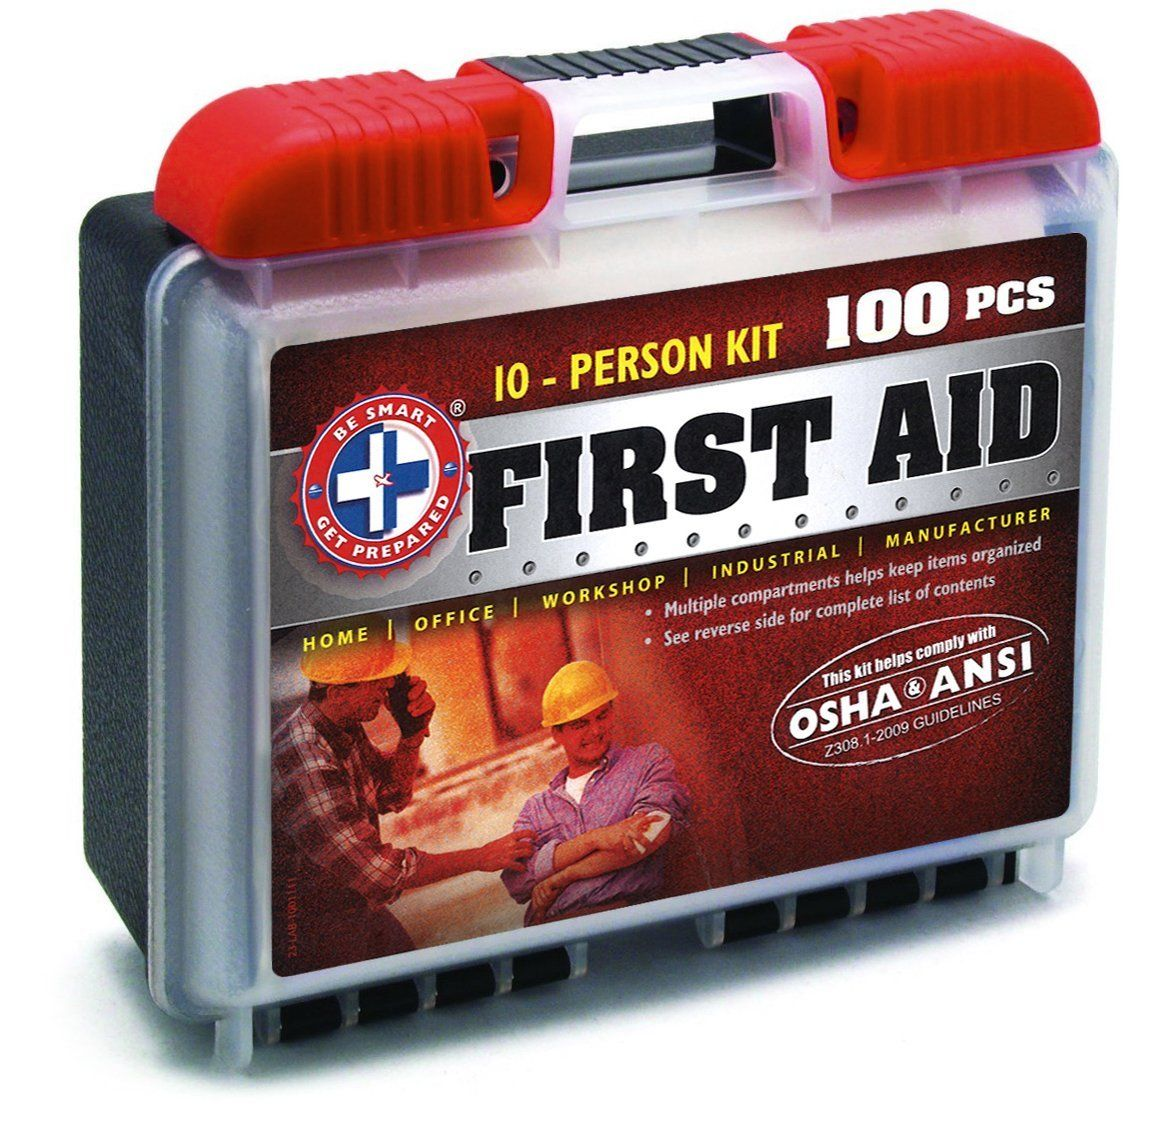 Be Smart Get Prepared 100 Piece First Aid Kit with ANSI